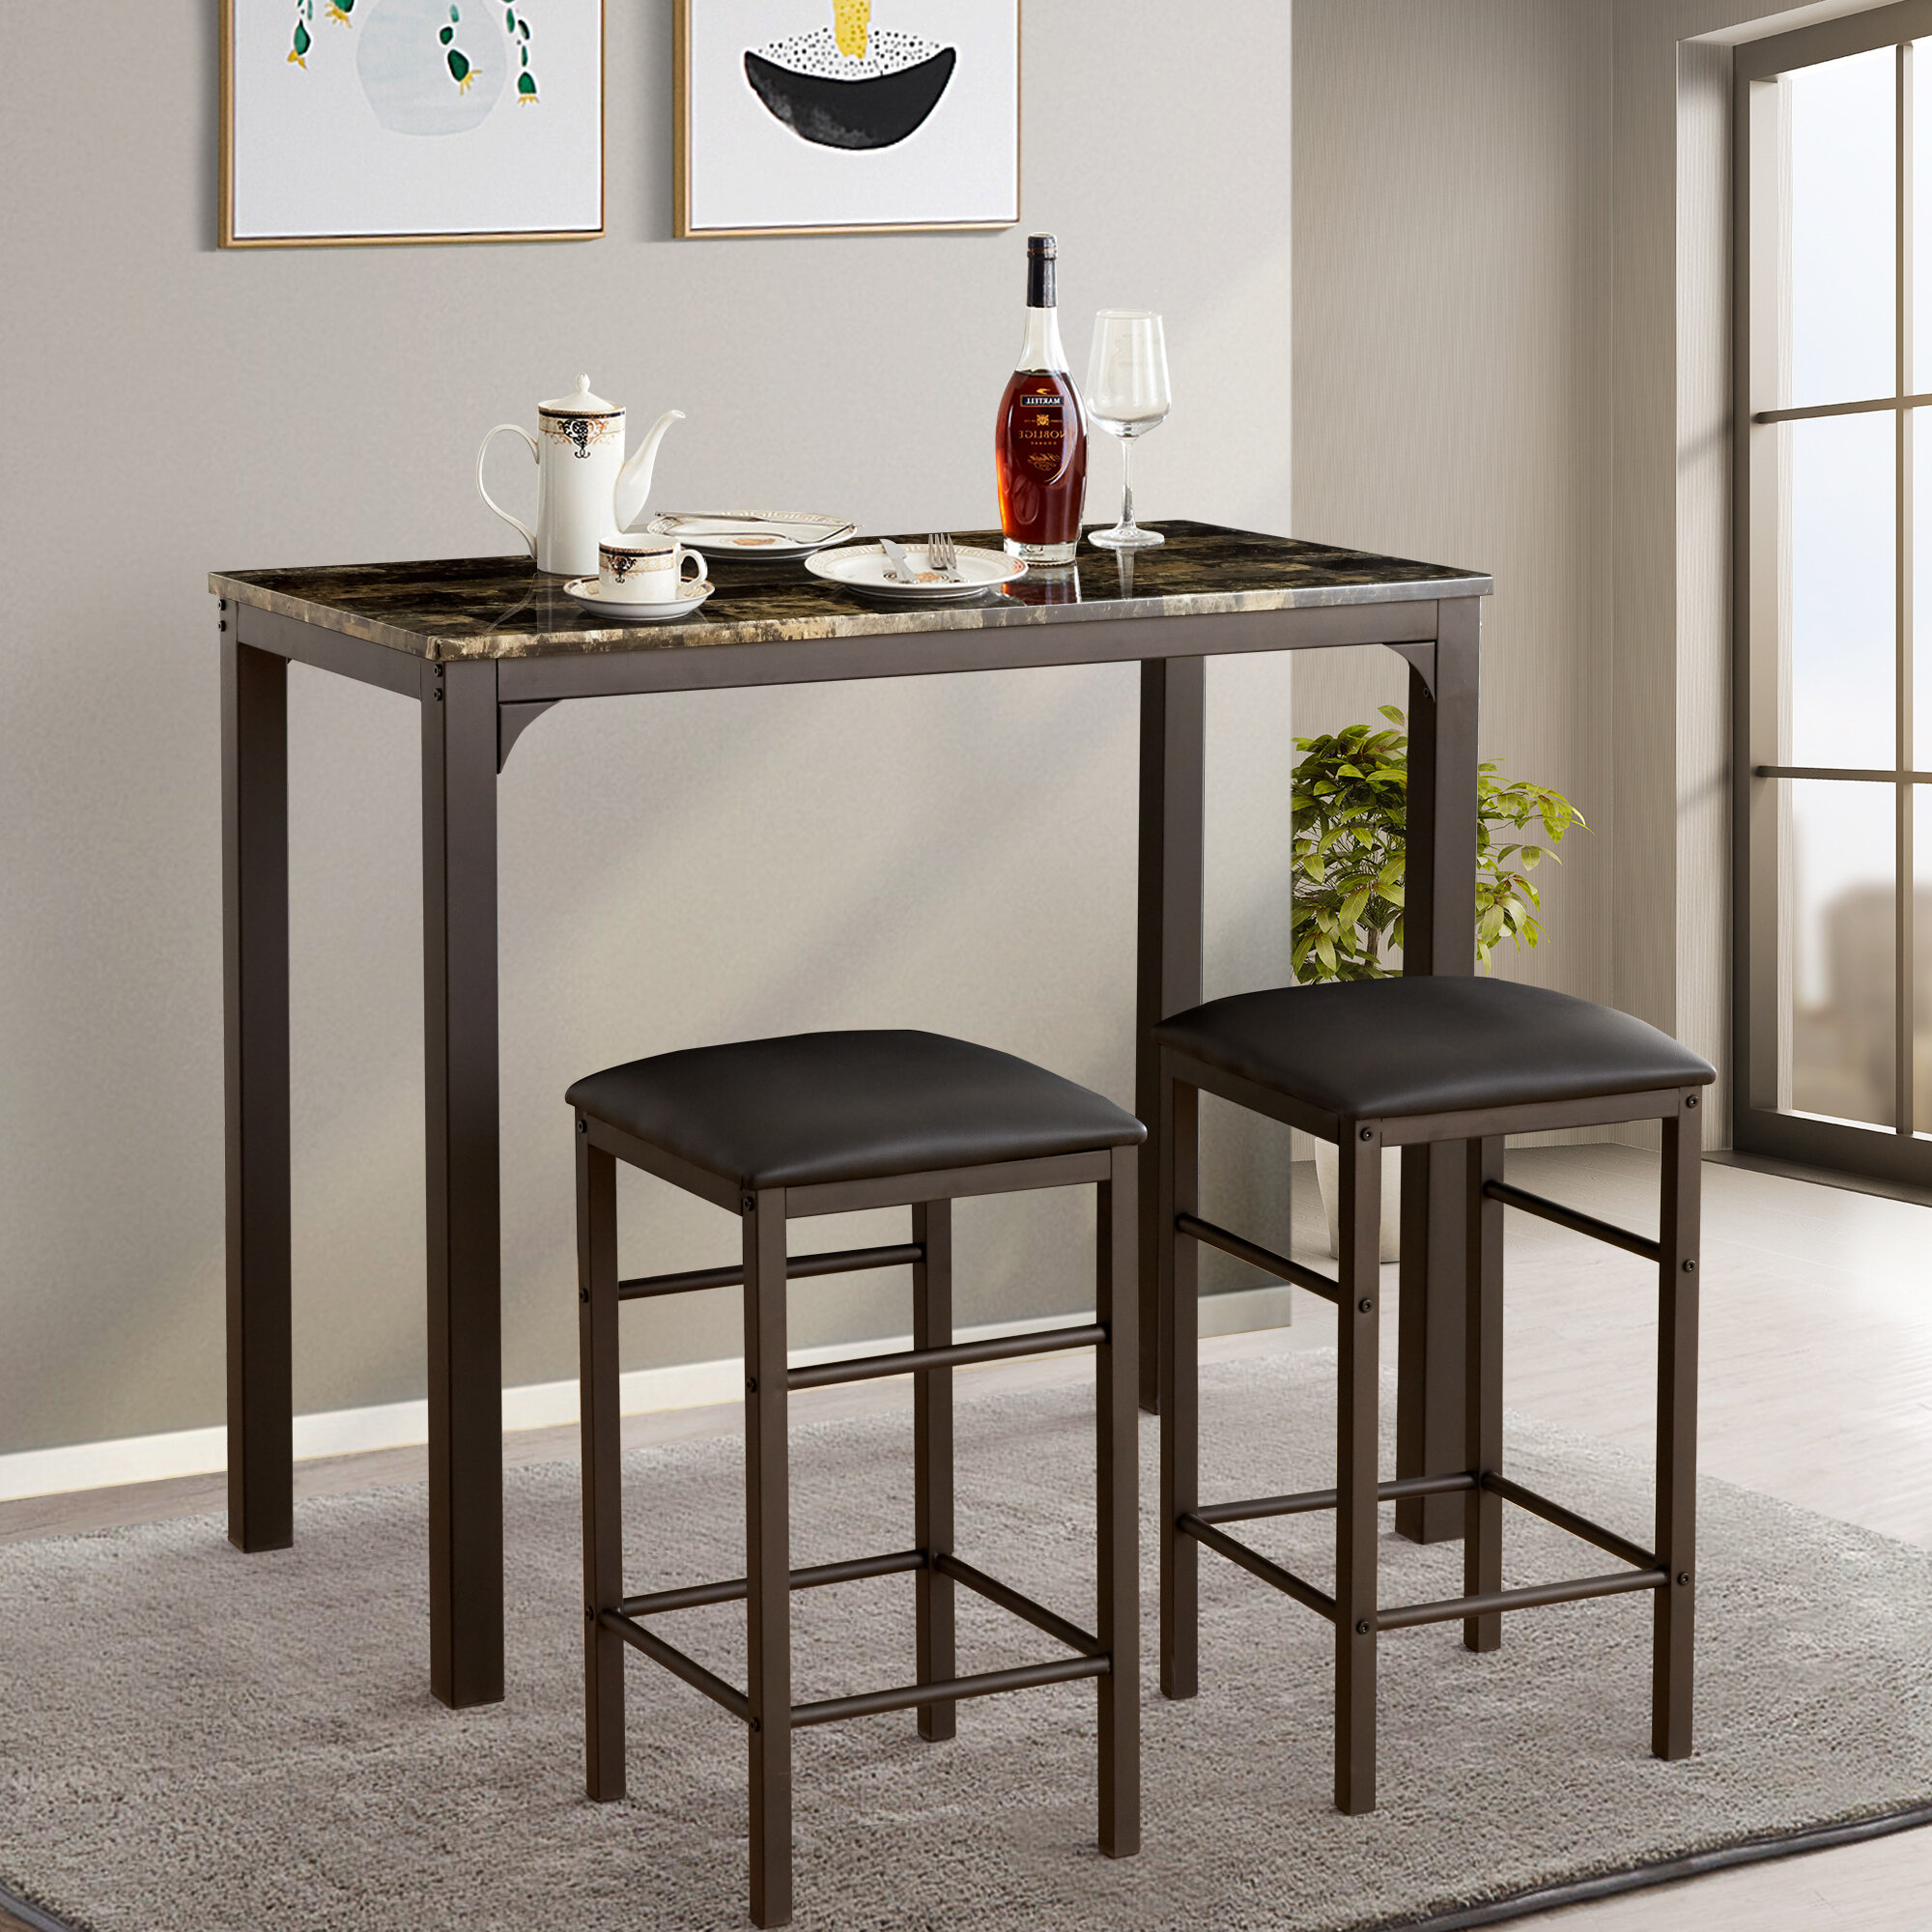 Tappahannock 3 Piece Counter Height Dining Set Within Best And Newest Lillard 3 Piece Breakfast Nook Dining Sets (View 10 of 20)